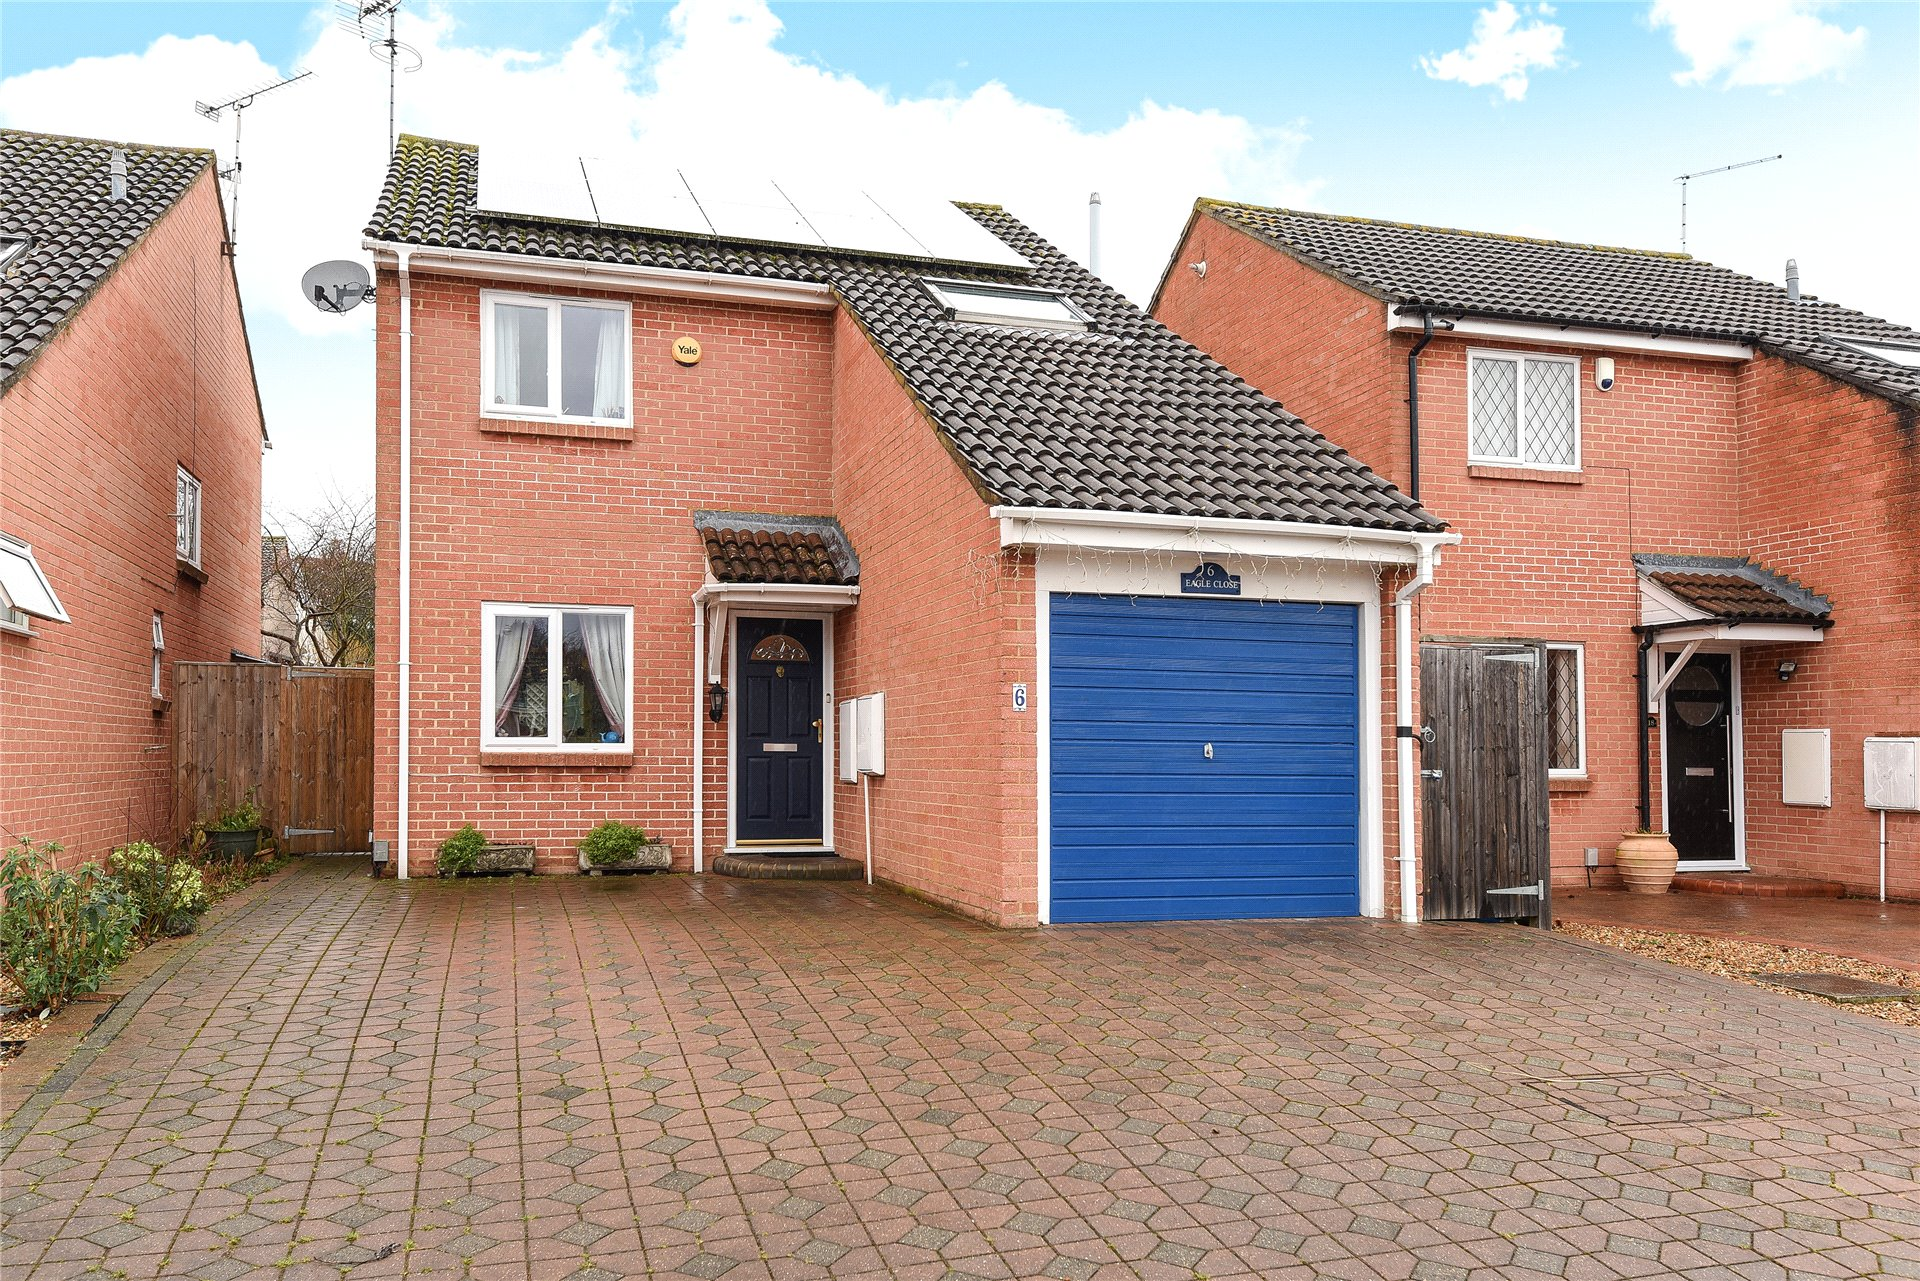 3 Bedrooms Detached House for sale in Eagle Close, Wokingham, Berkshire, RG41